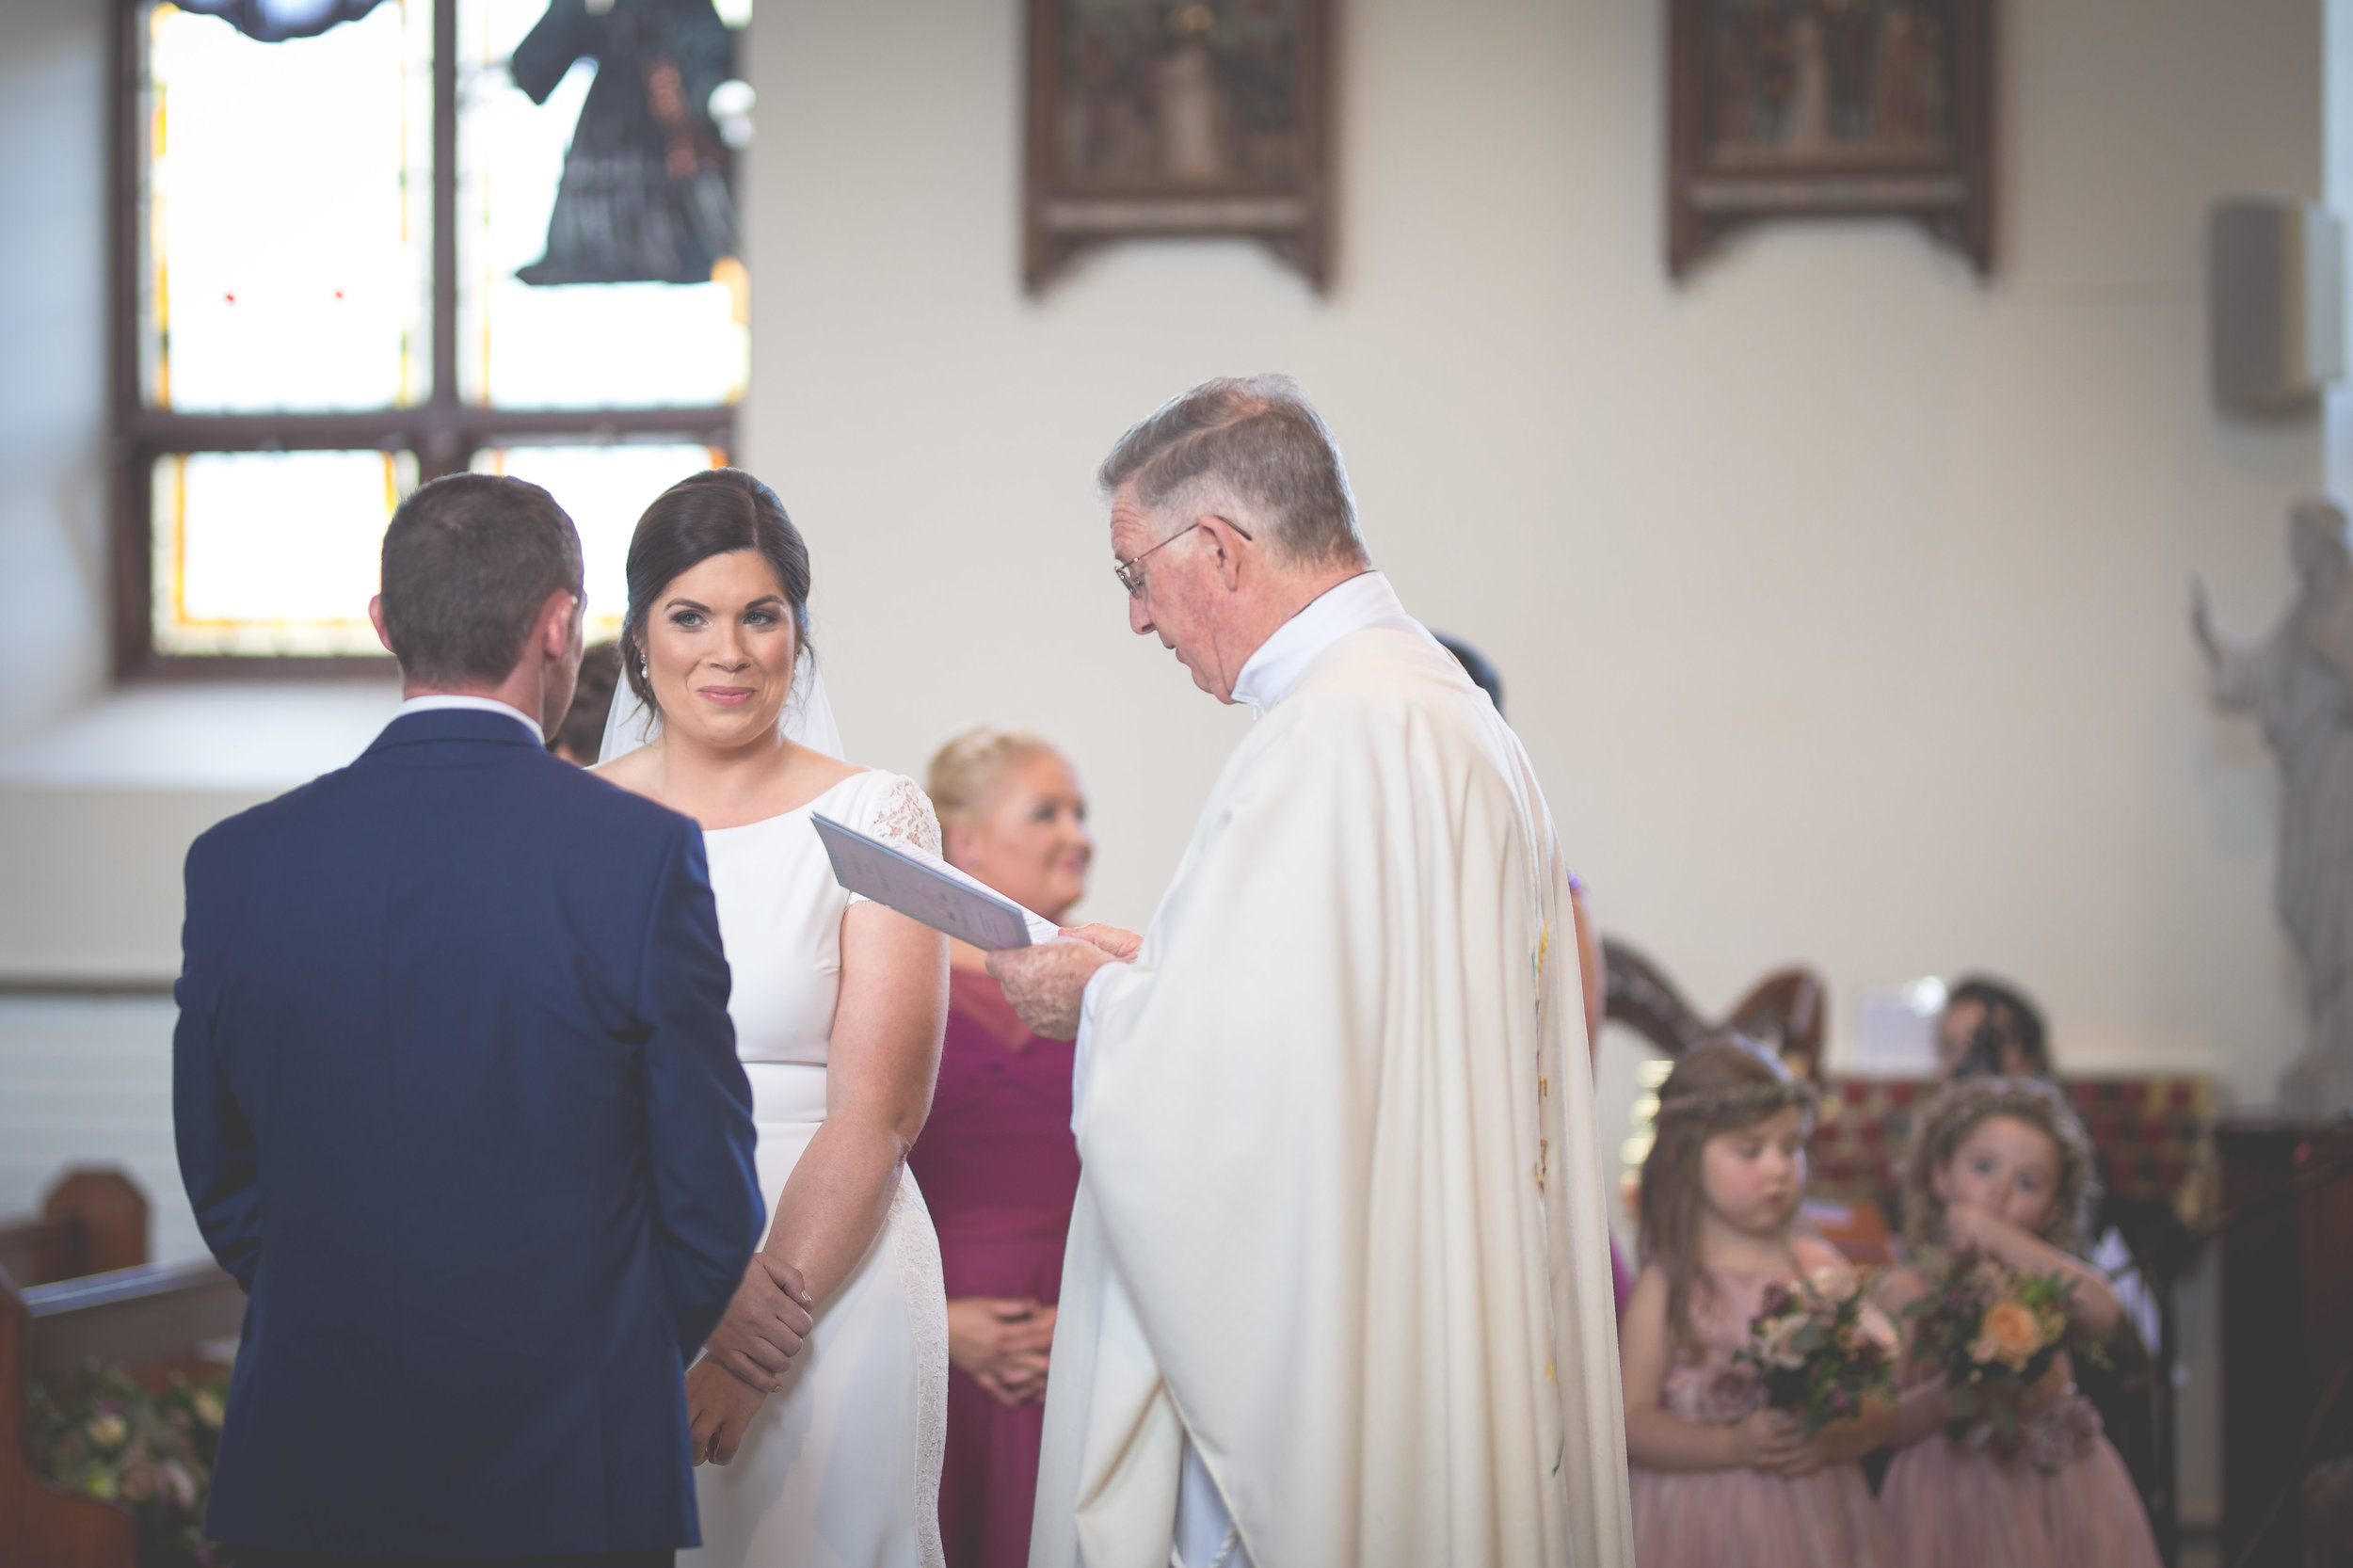 Northern Ireland Wedding Photographer | Brian McEwan Photography | Affordable Wedding Photography Throughout Antrim Down Armagh Tyrone Londonderry Derry Down Fermanagh -63.jpg